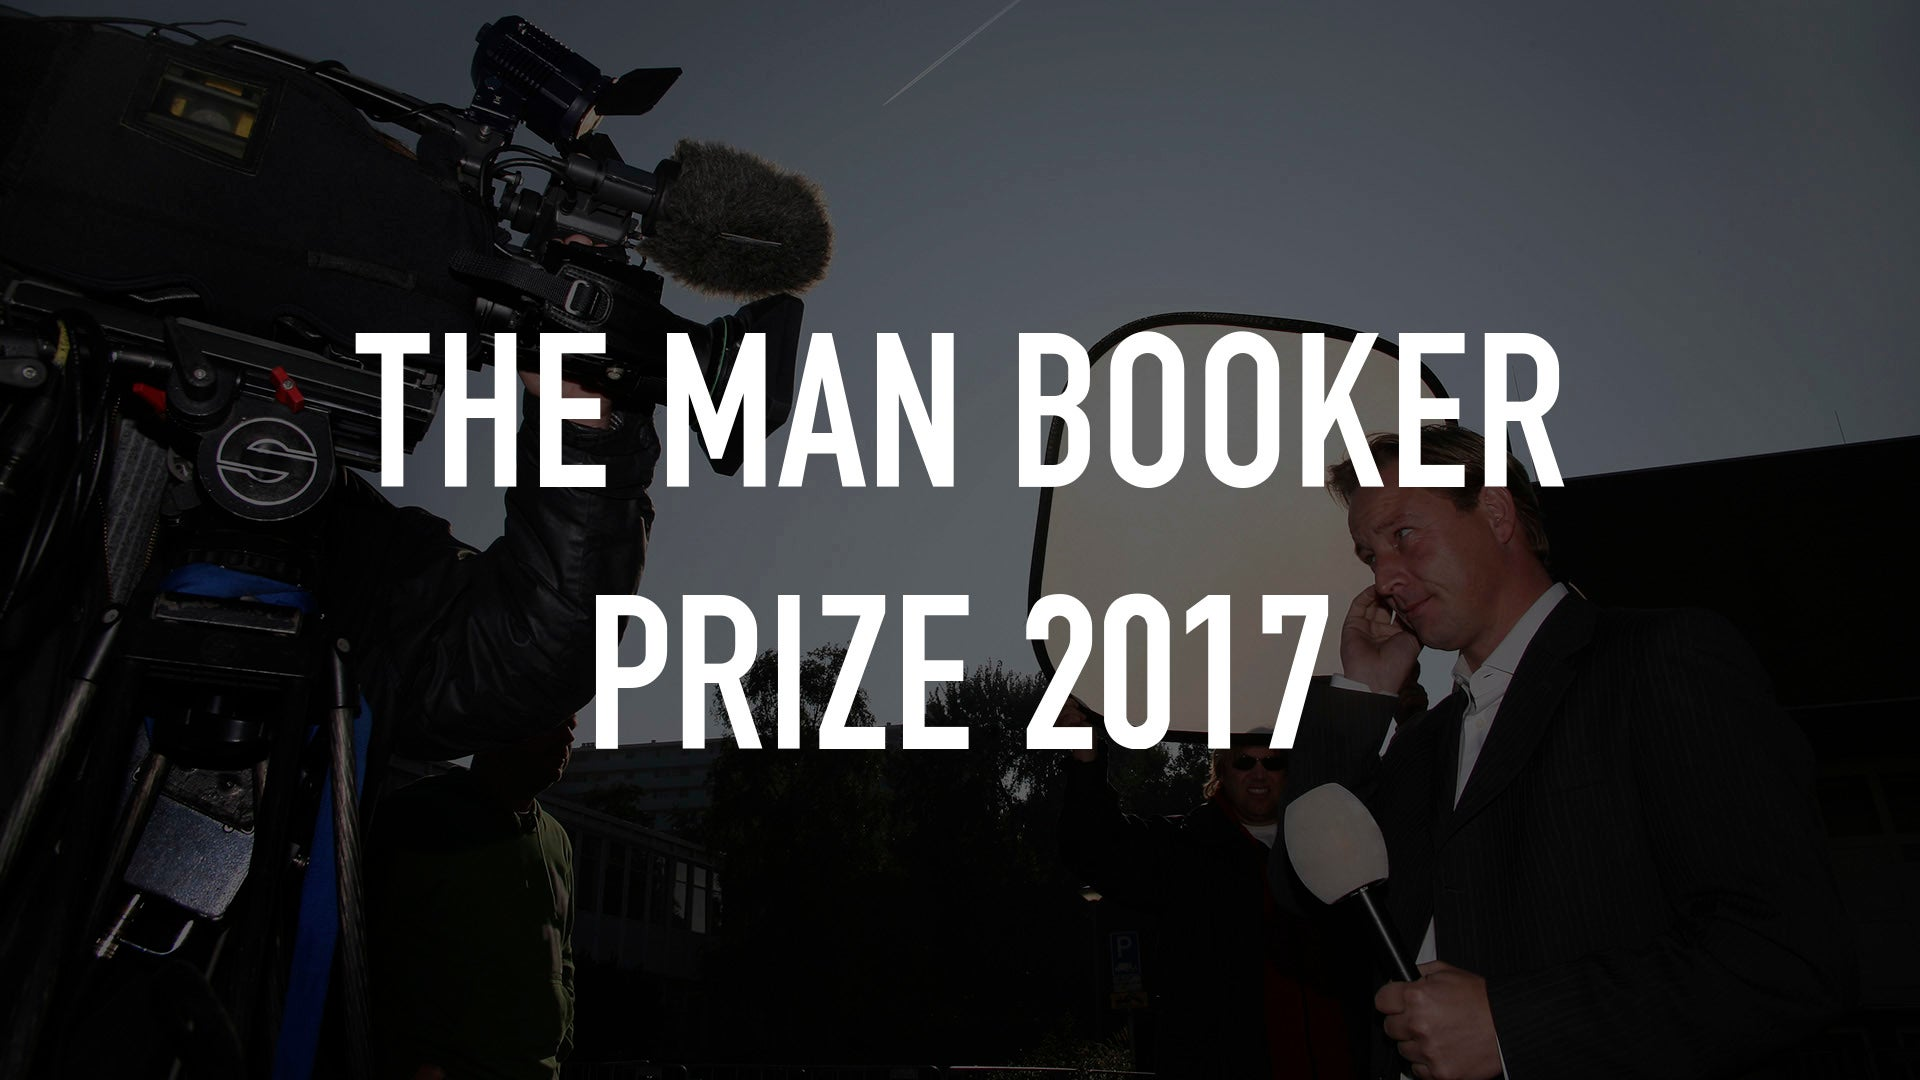 The Man Booker Prize 2017